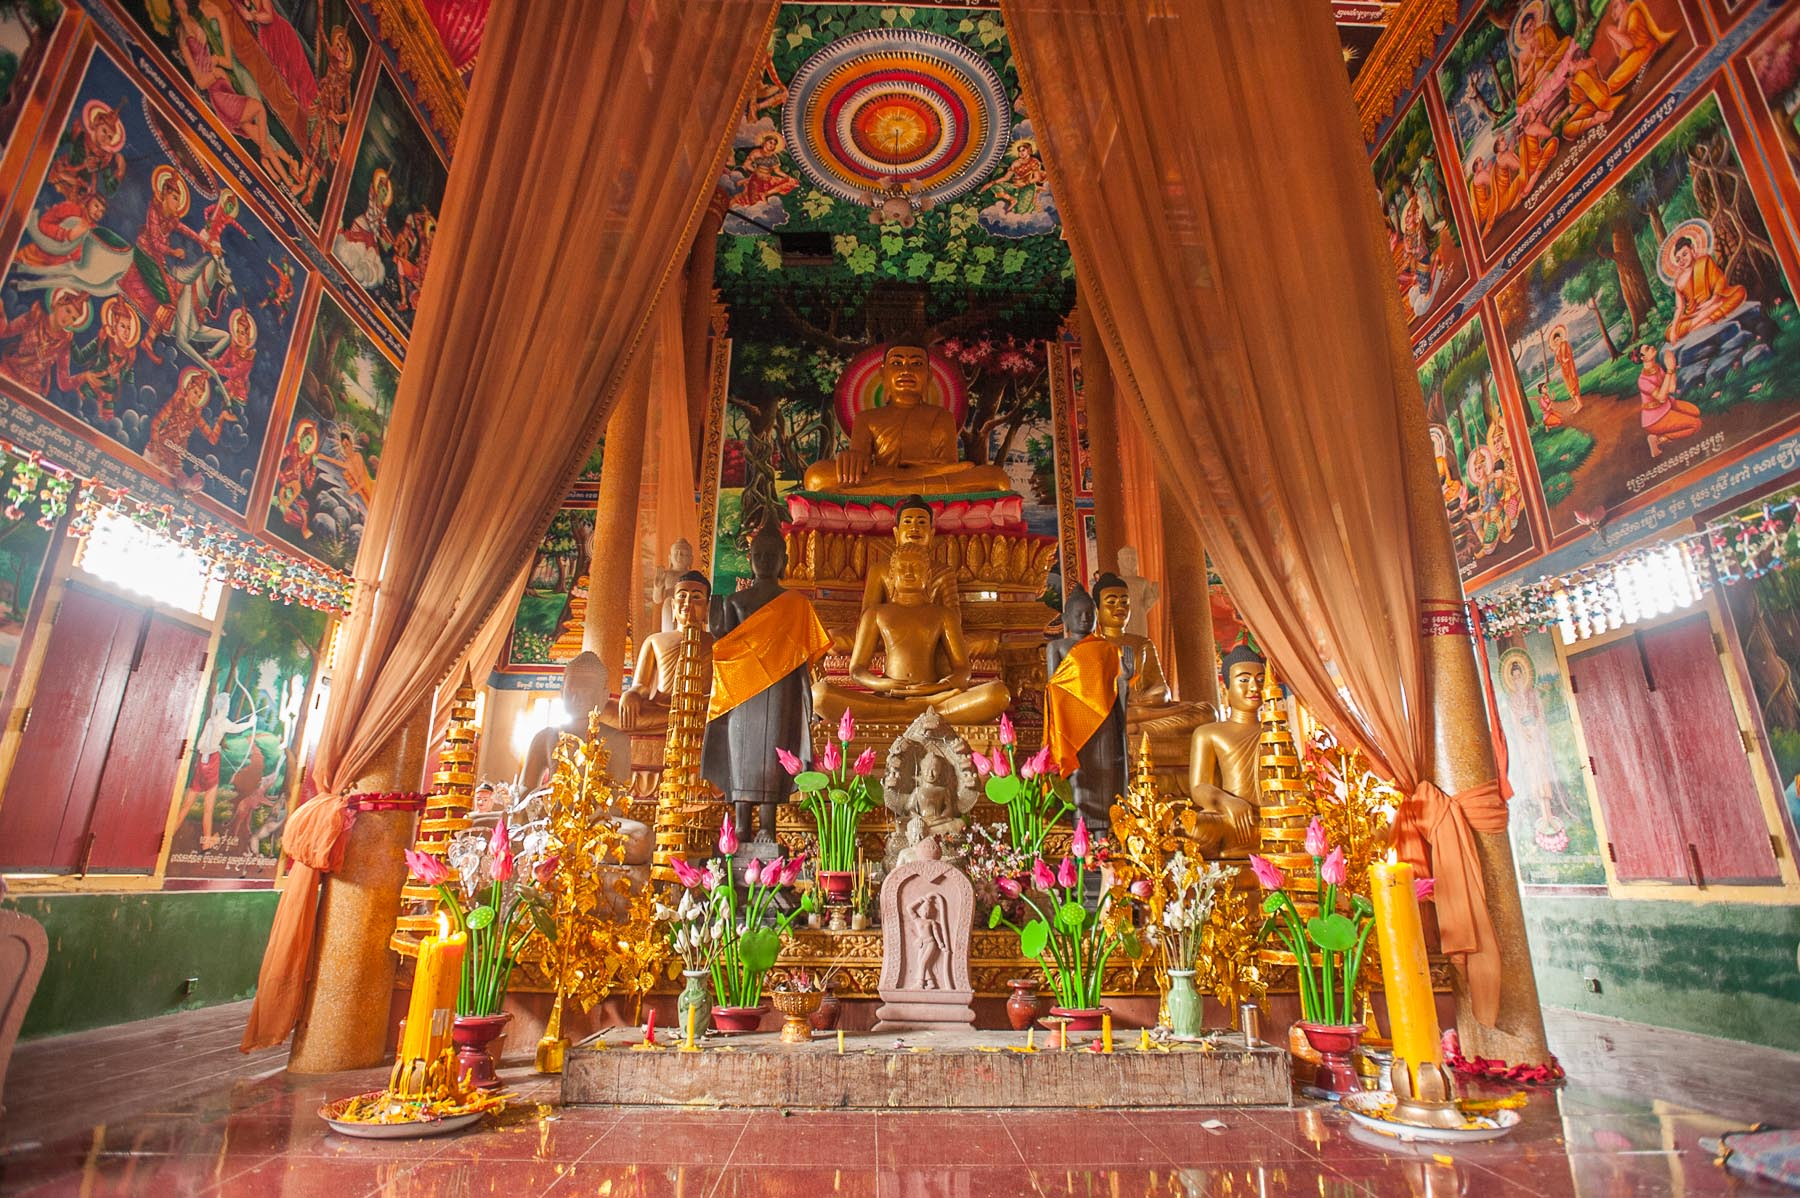 Colorful Buddhist Temple in Siem Reap, Cambodia.